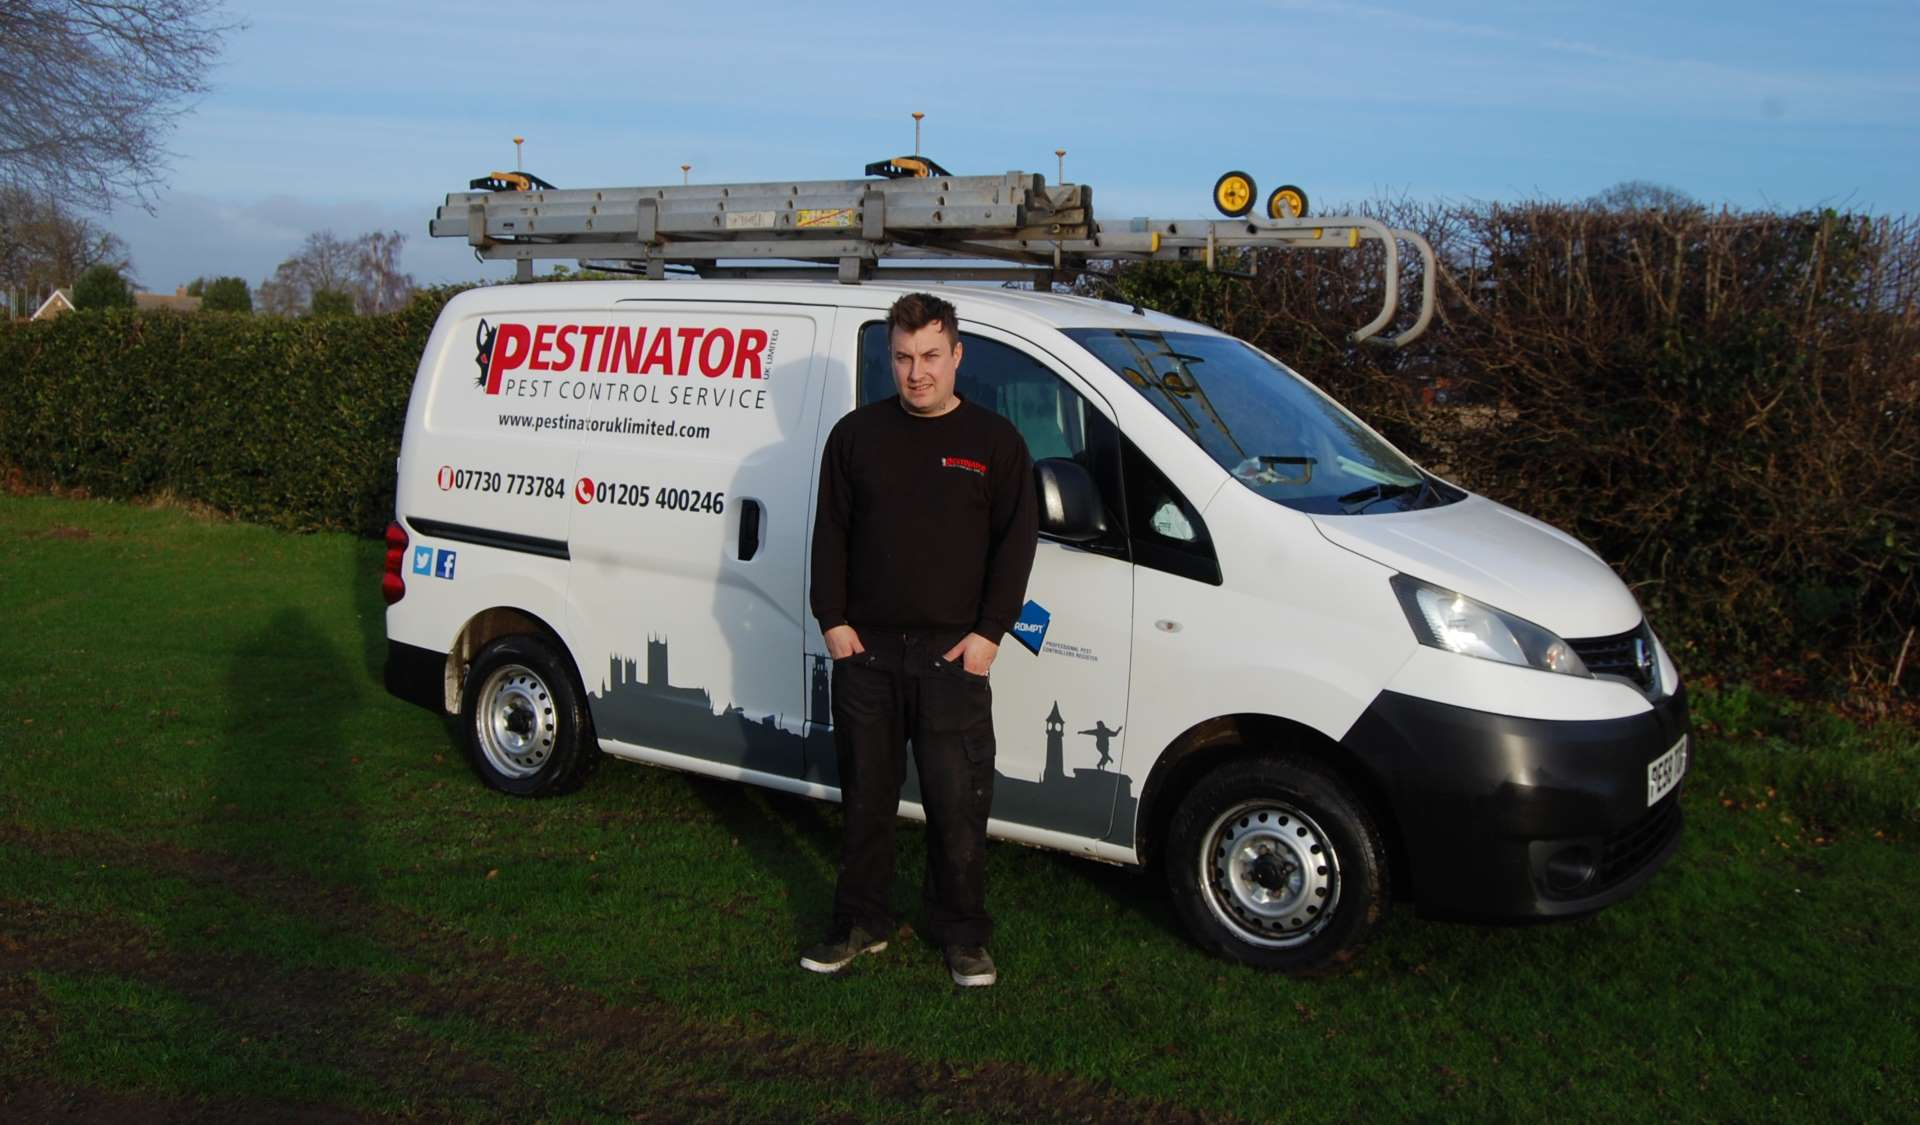 Pest Control Agreement Plan – Pestinator LTD Covering Lincolnshire